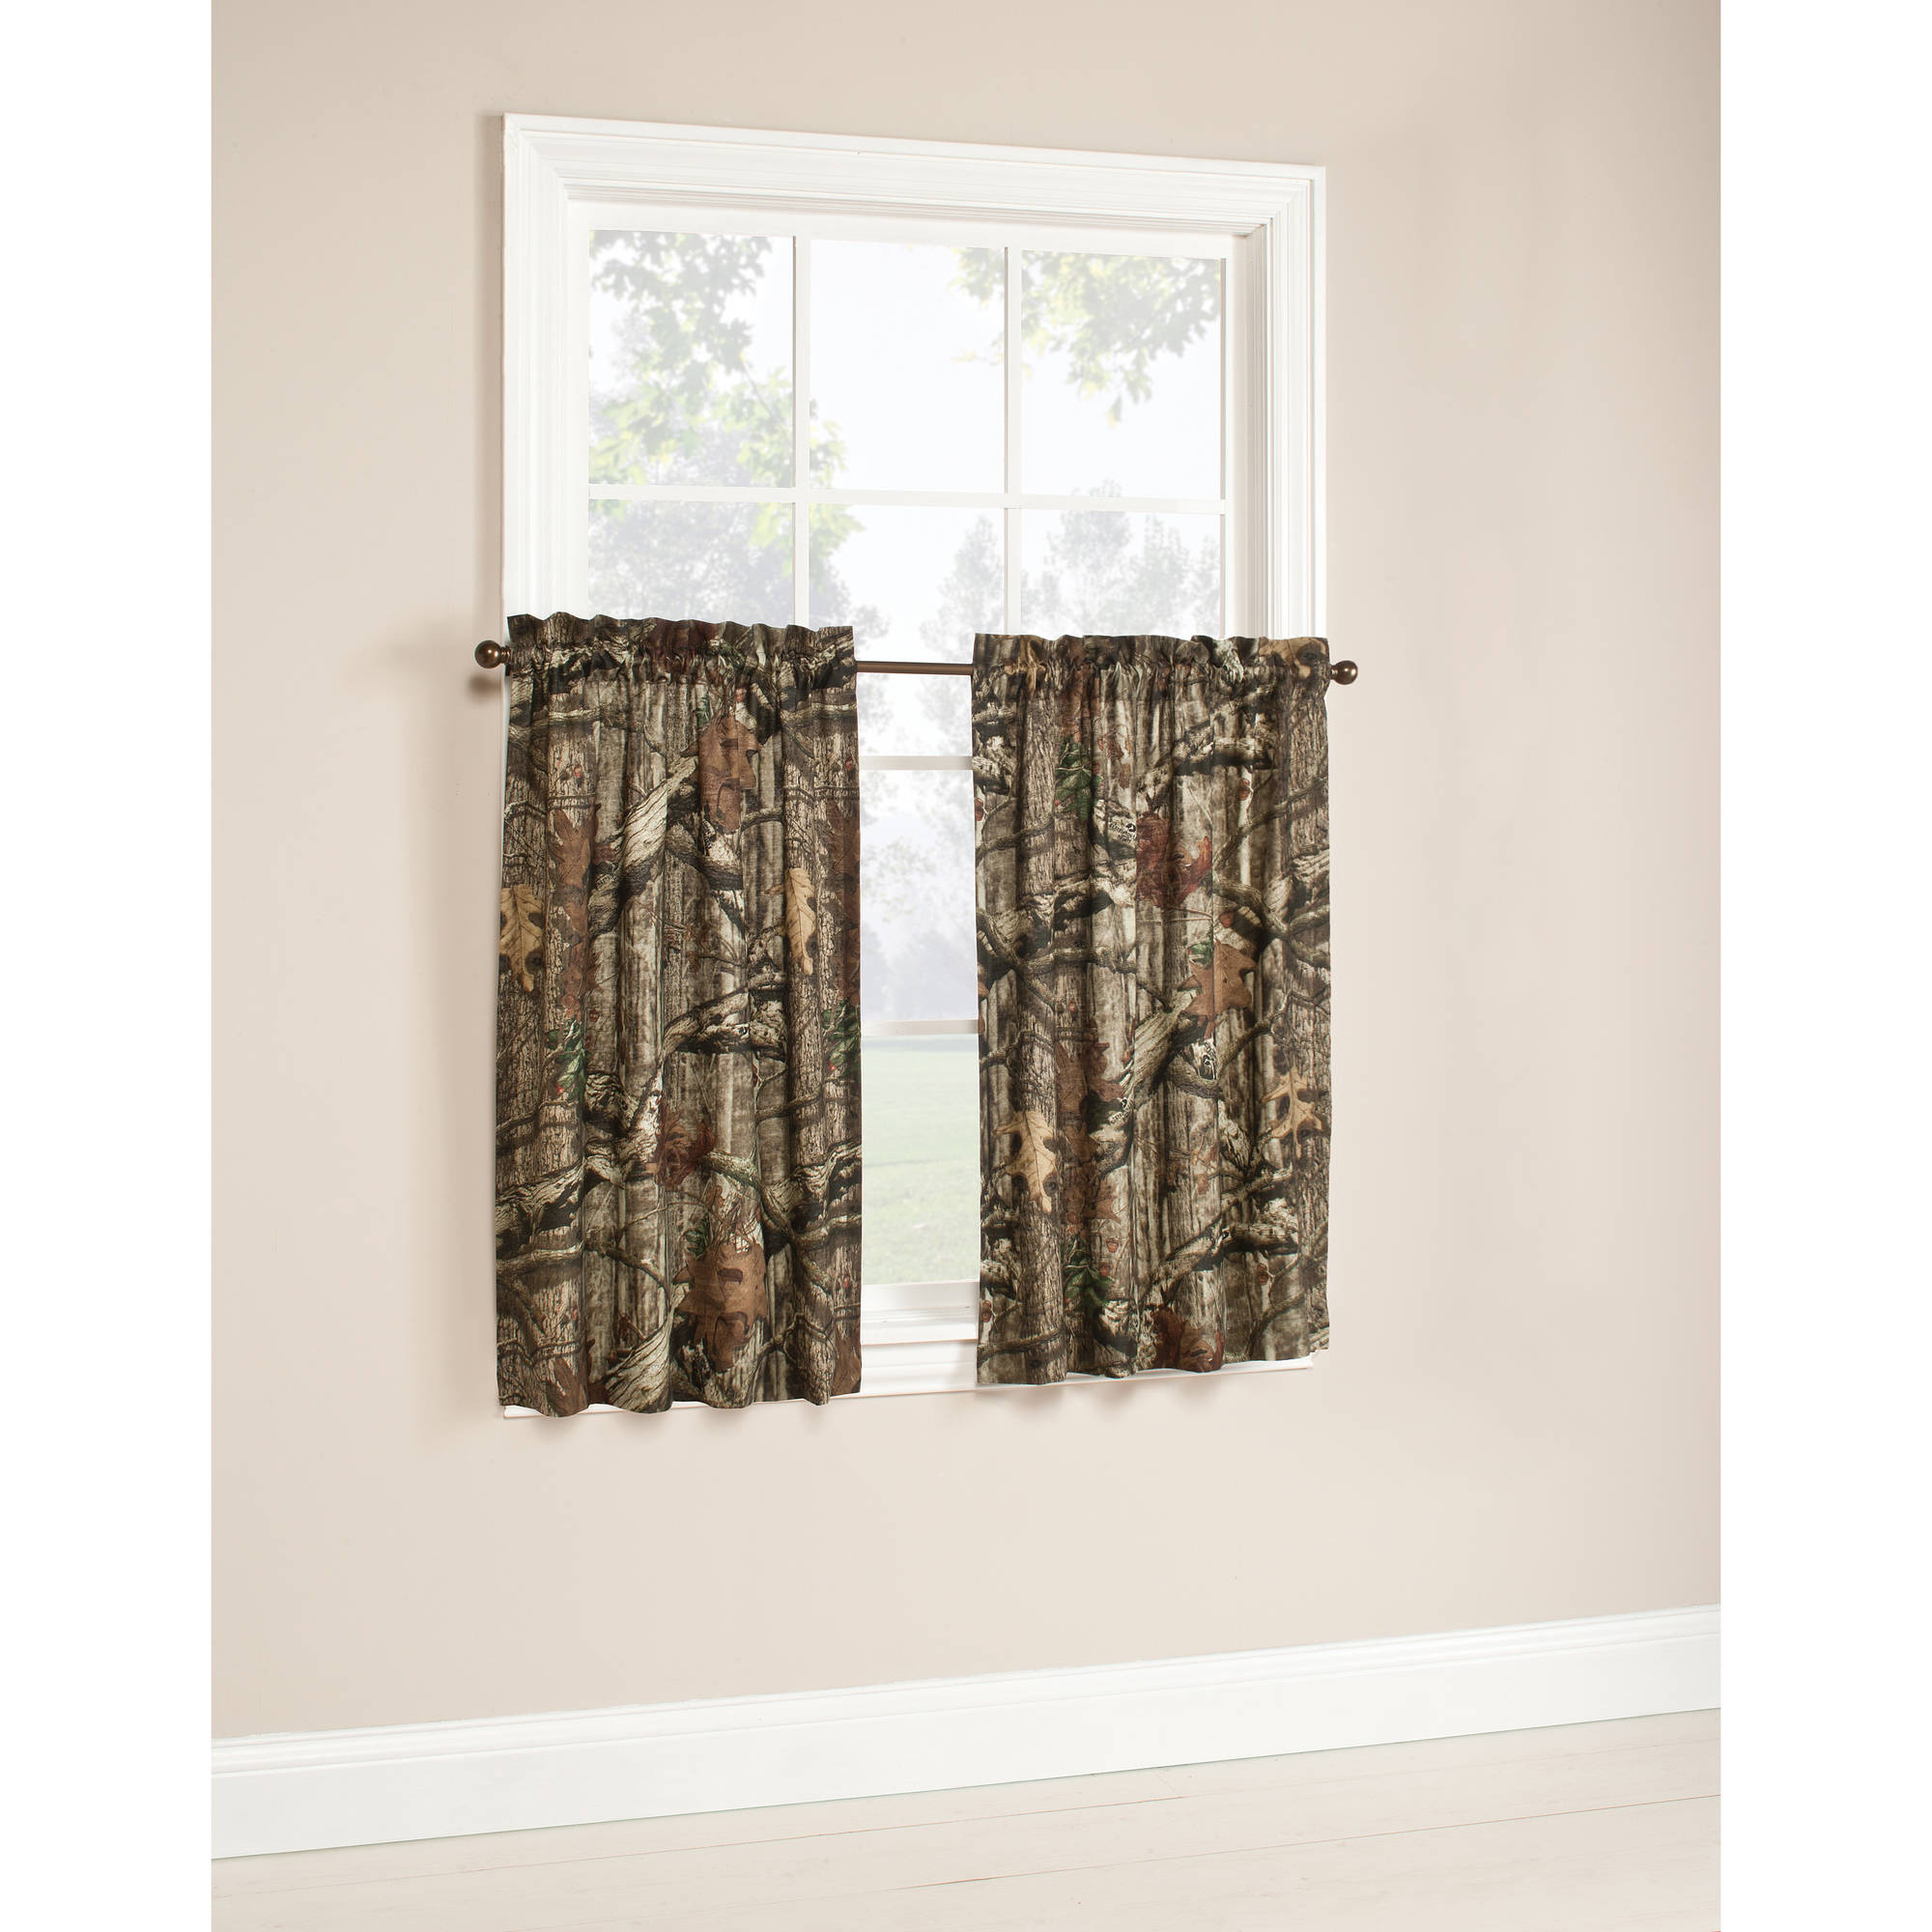 Curtains For Sale At Walmart Mossy Oak Camouflage Curtain Tier Pair 75 Polyester 25